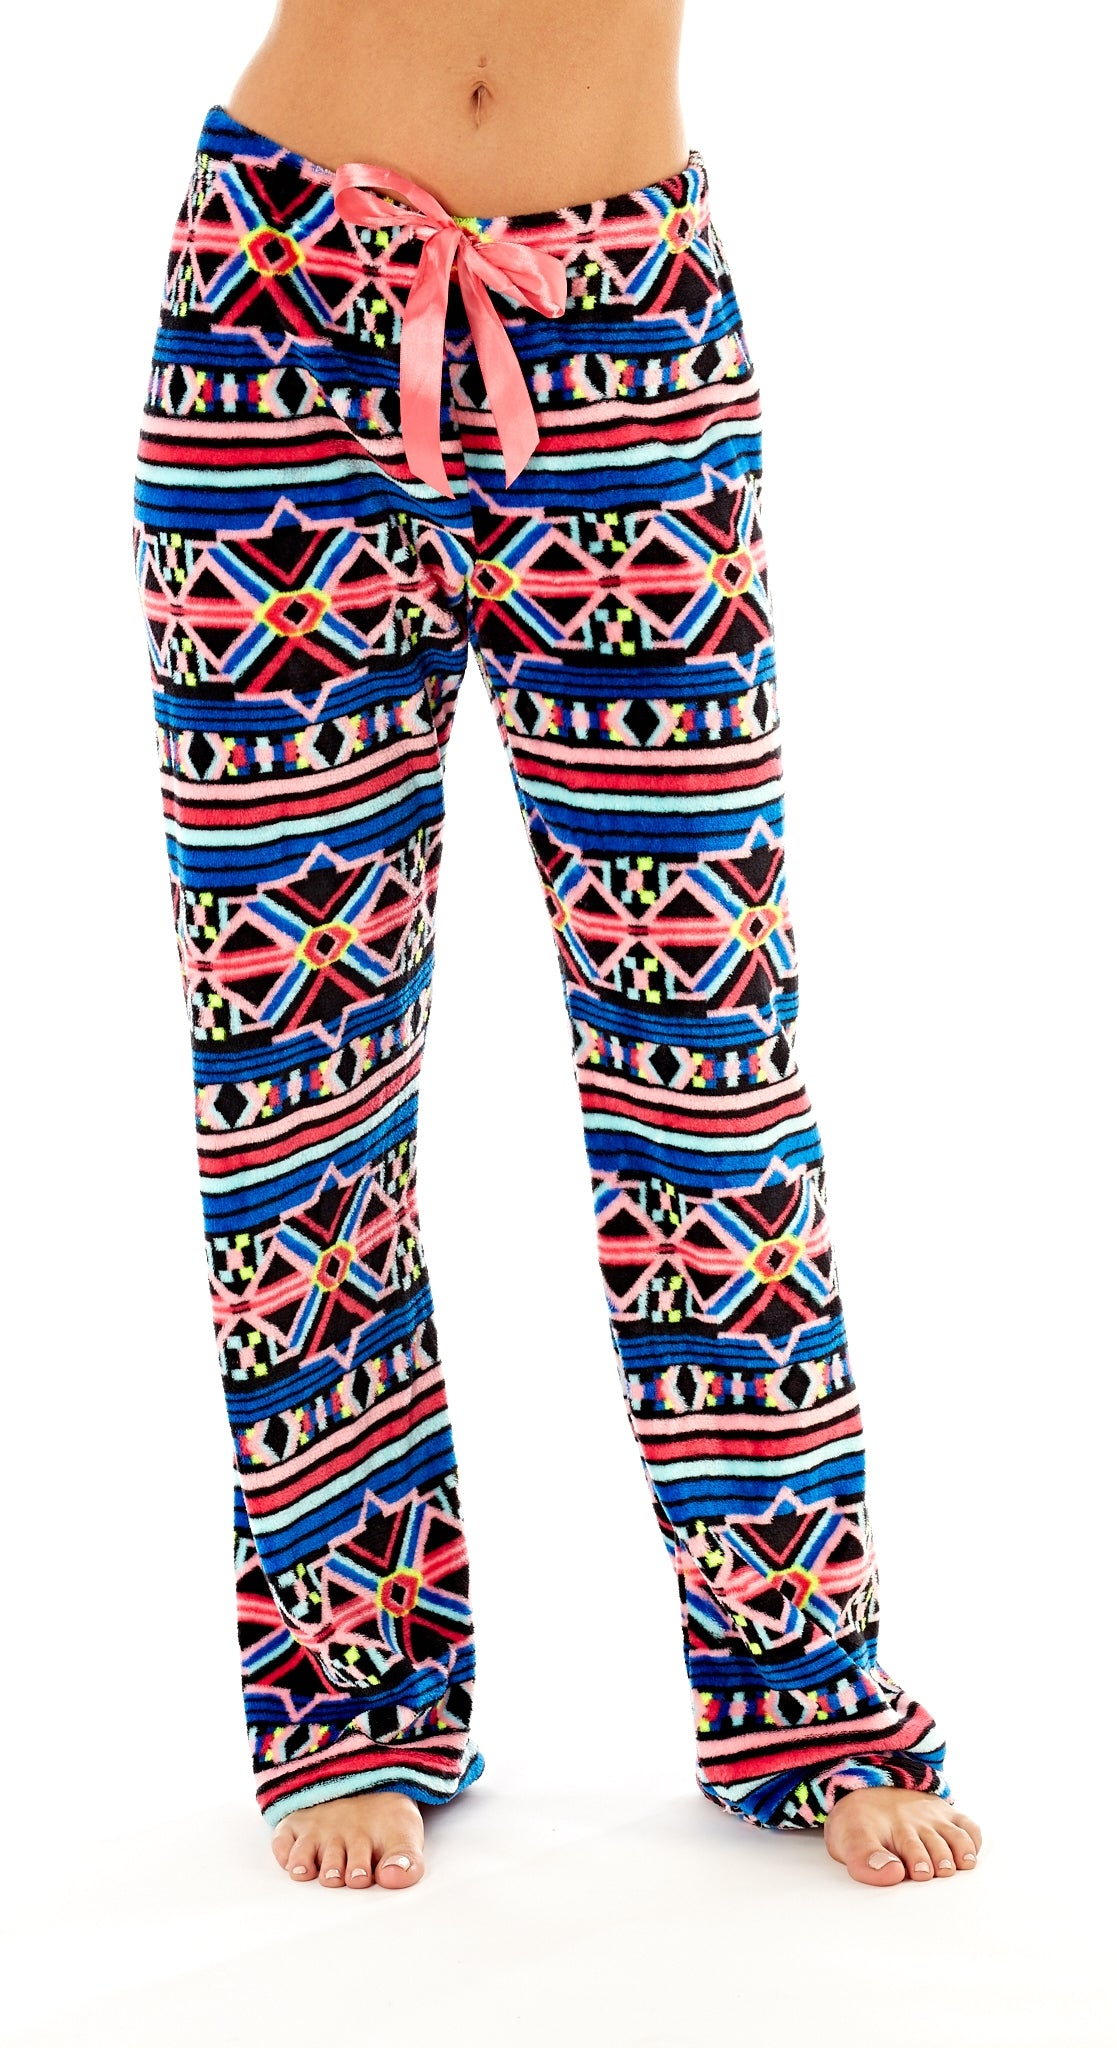 Octave Ladies Loungewear Pants Pyjama Bottoms - Aztec